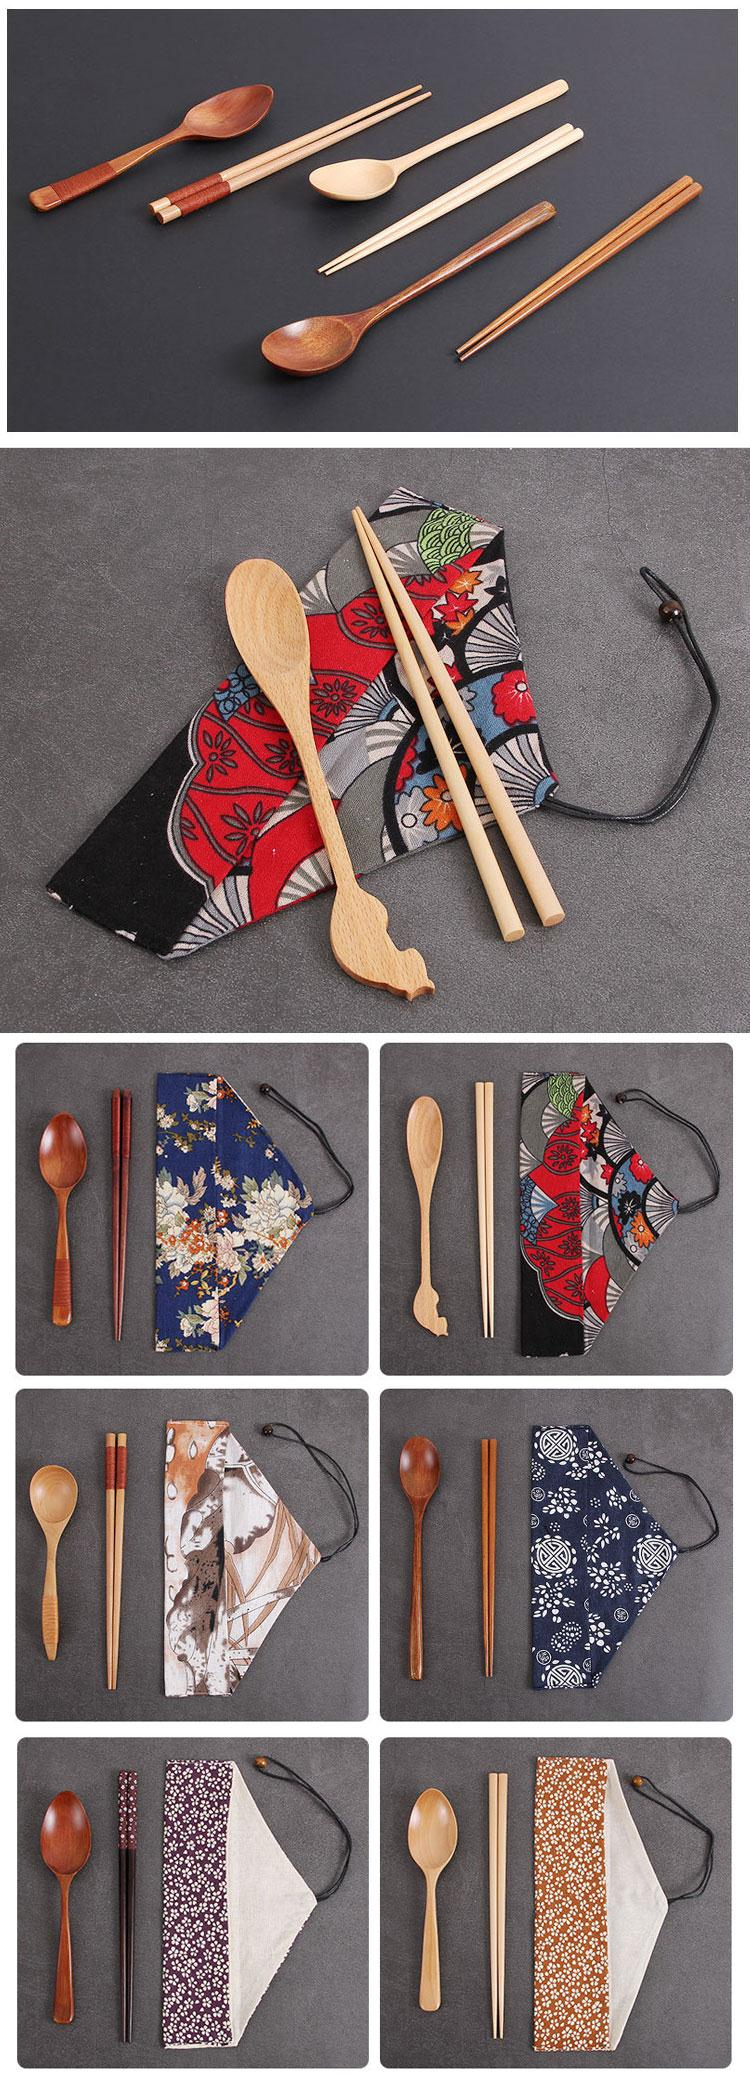 Korean reusable portable travel camping flatware bamboo wooden spoon and chopsticks gift set